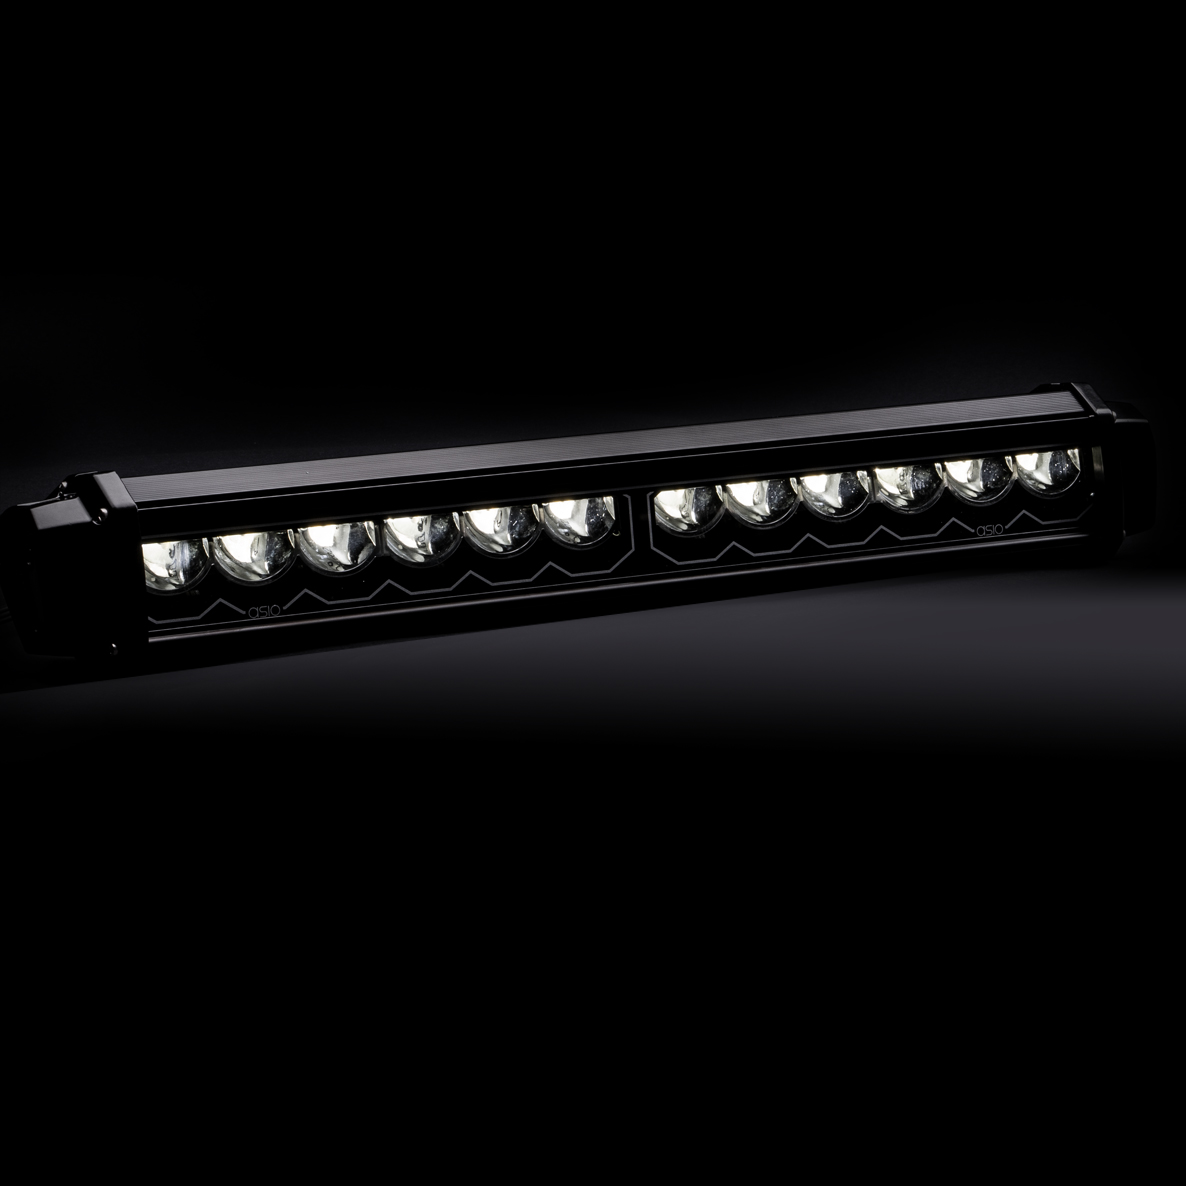 led light bar adapt 30 inches jeep truck ATV